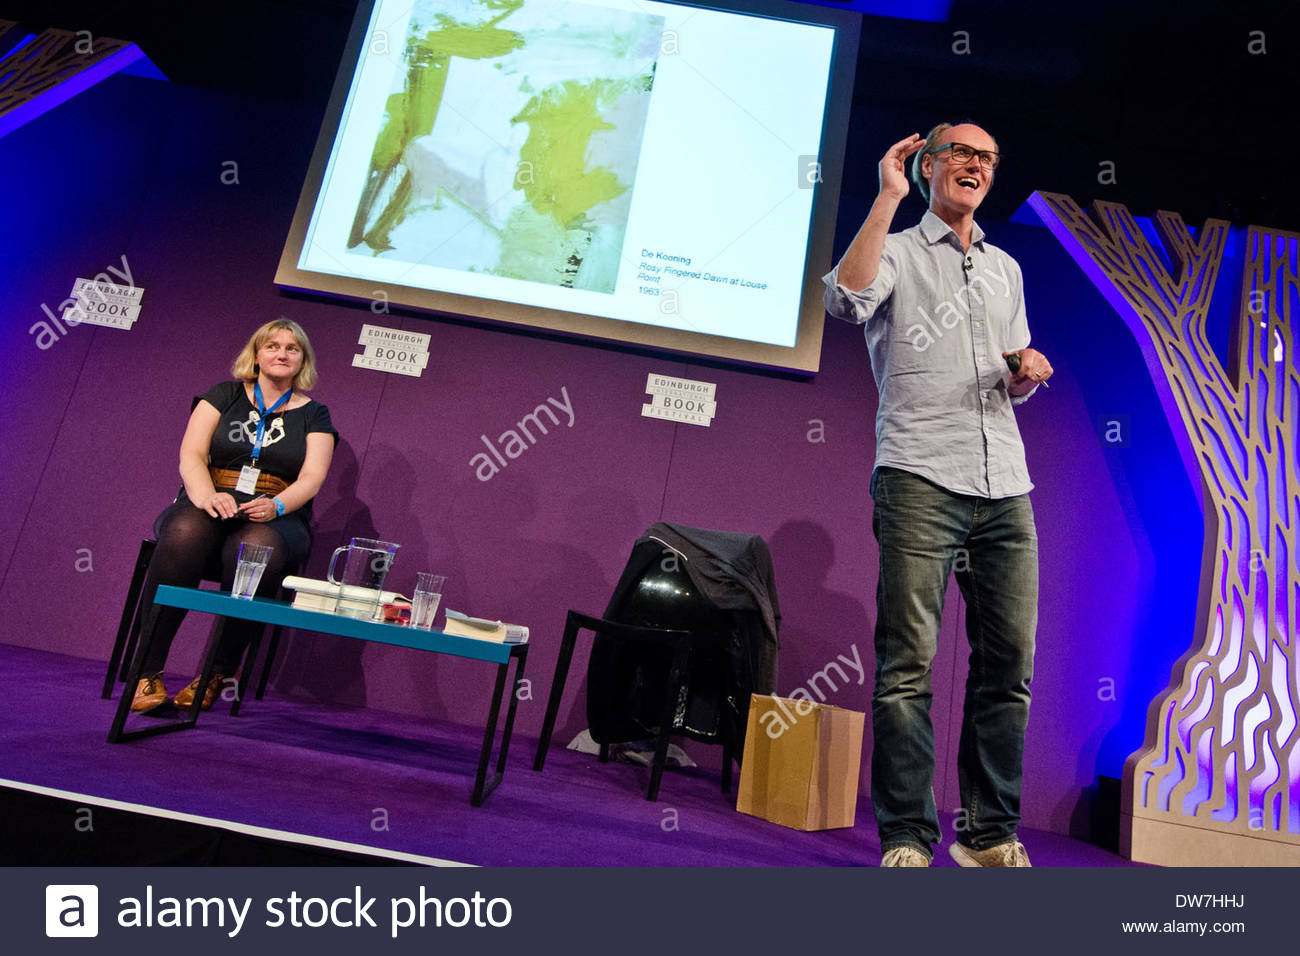 British broadcaster and writer Will Gompertz (right) at the Edinburgh International Book Festival. He is the BBC's arts editor. - Stock Image